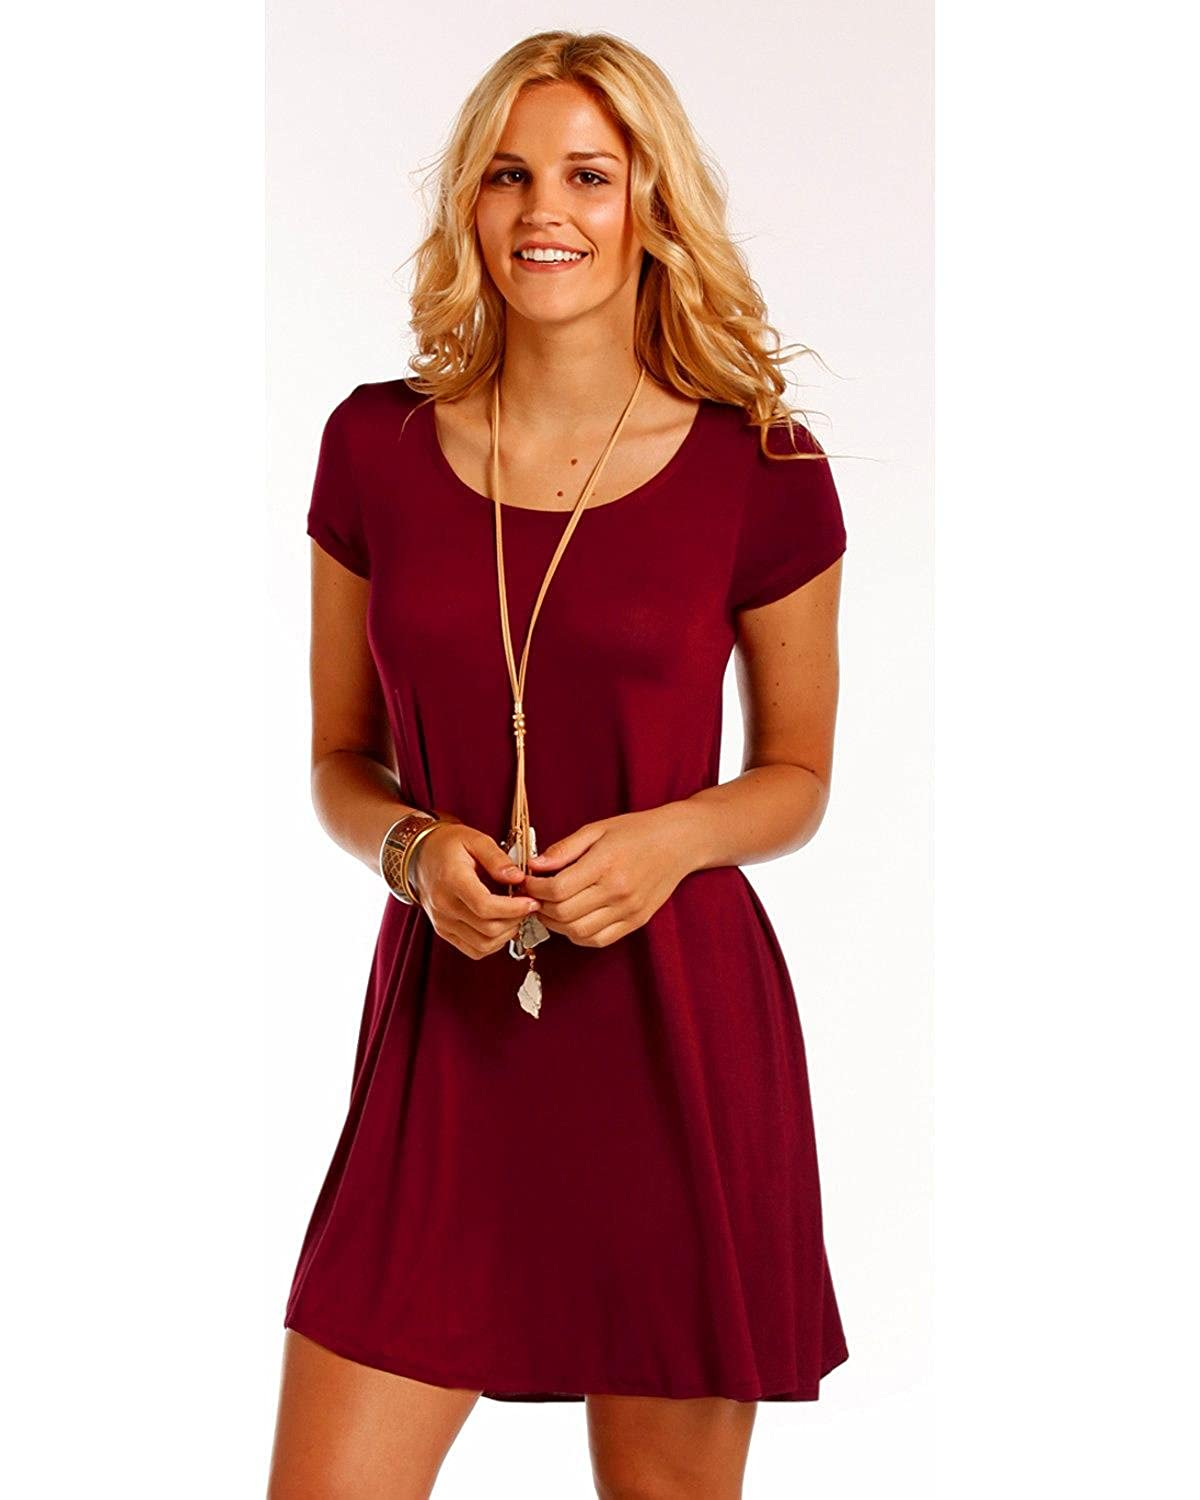 cce393121a97 Panhandle Women's Cap Sleeve Dress - J0-4184-Win at Amazon Women's Clothing  store: